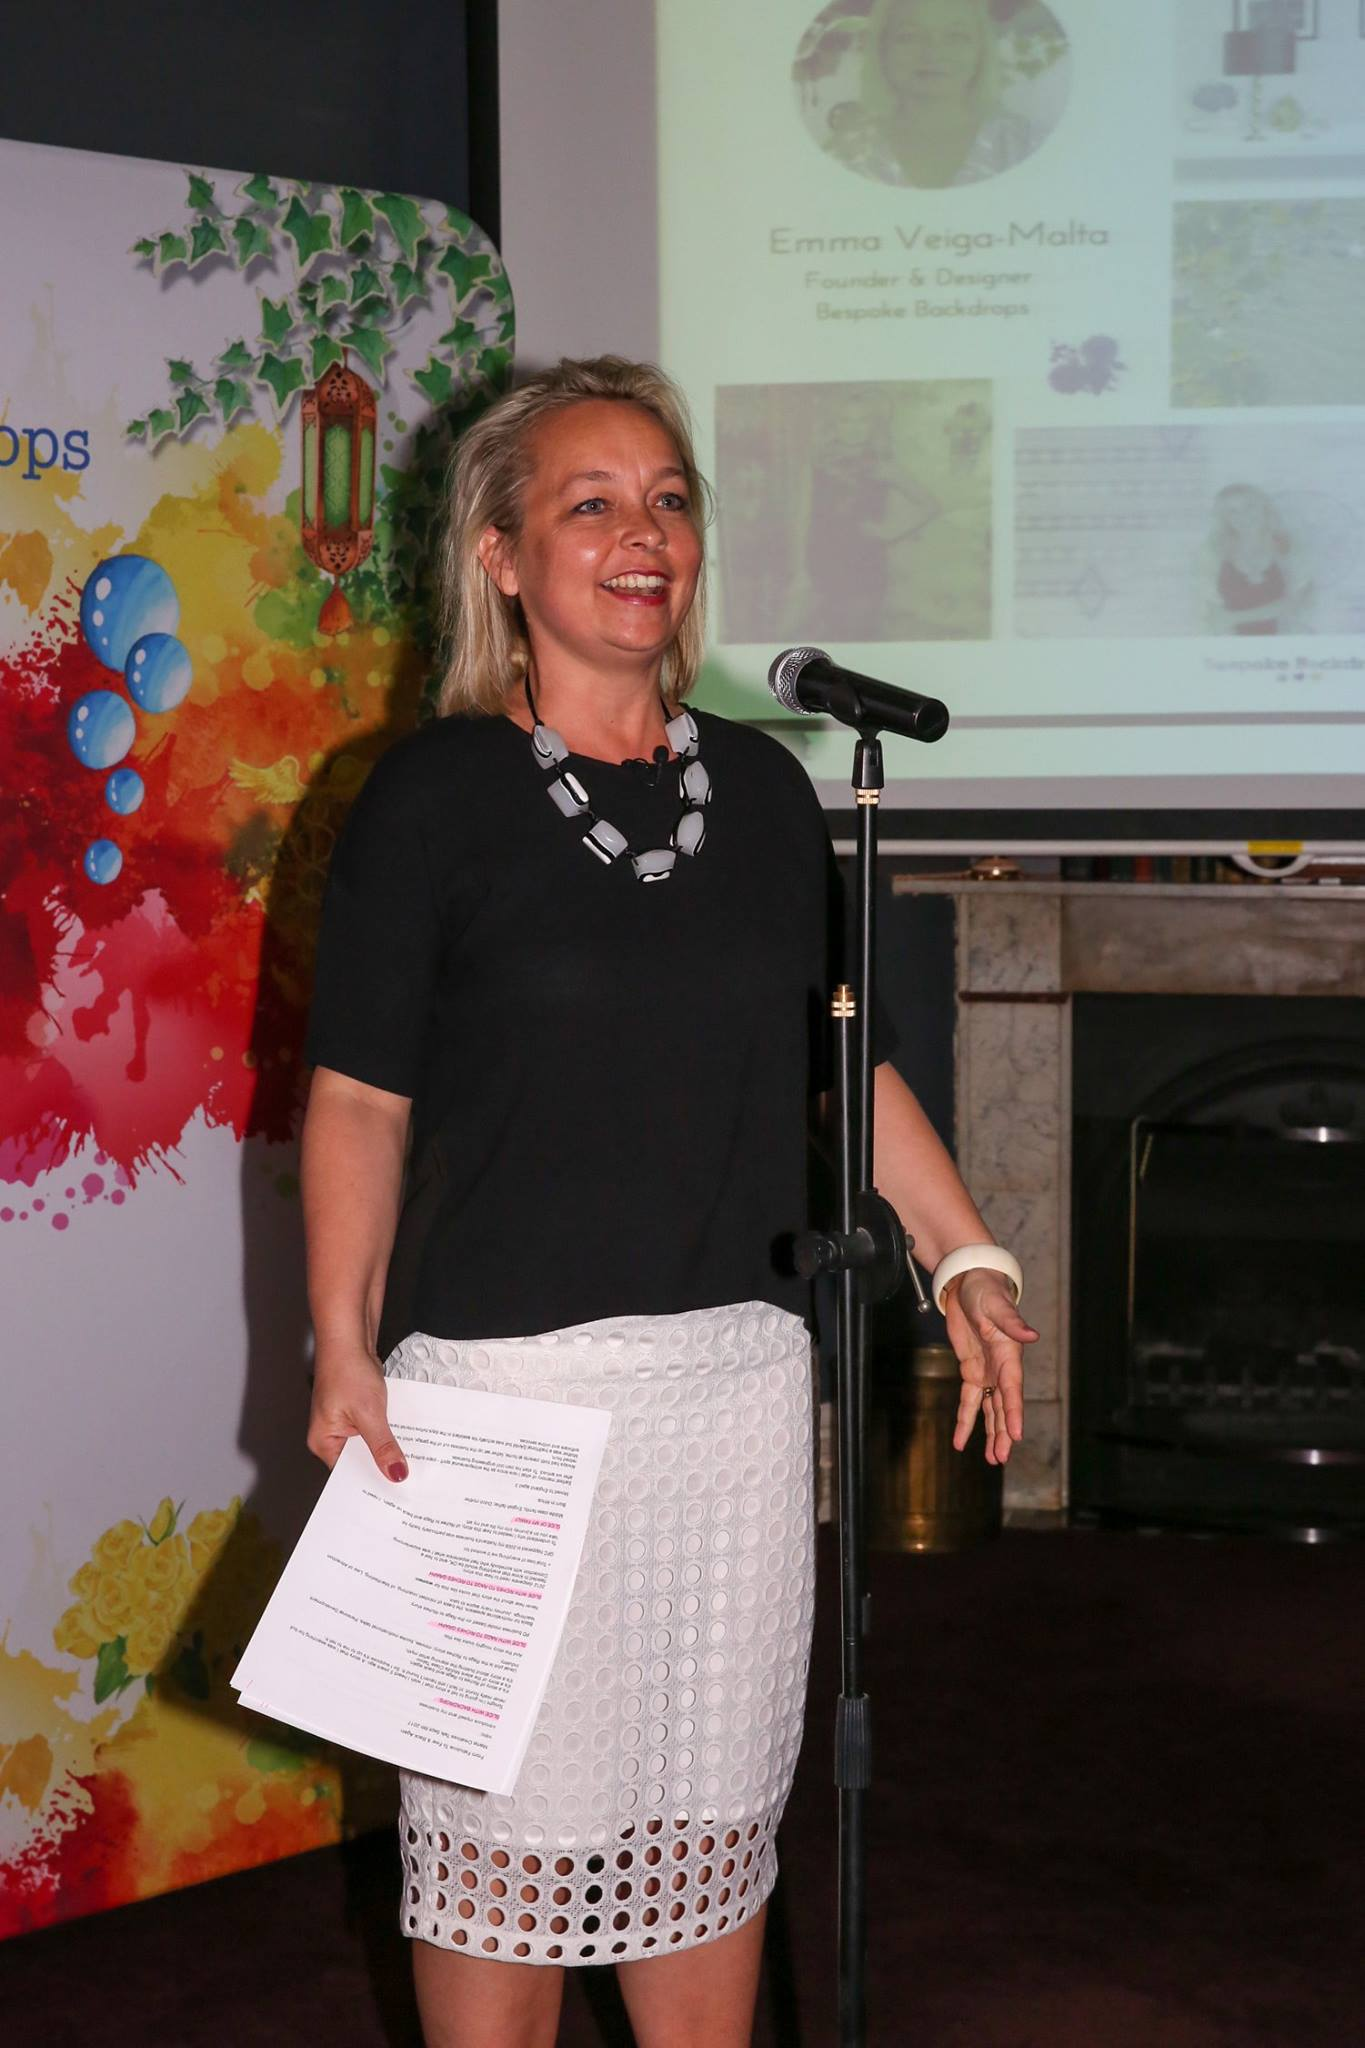 In action, our fabulous featured evening presenter, Emma Veiga-Malta.